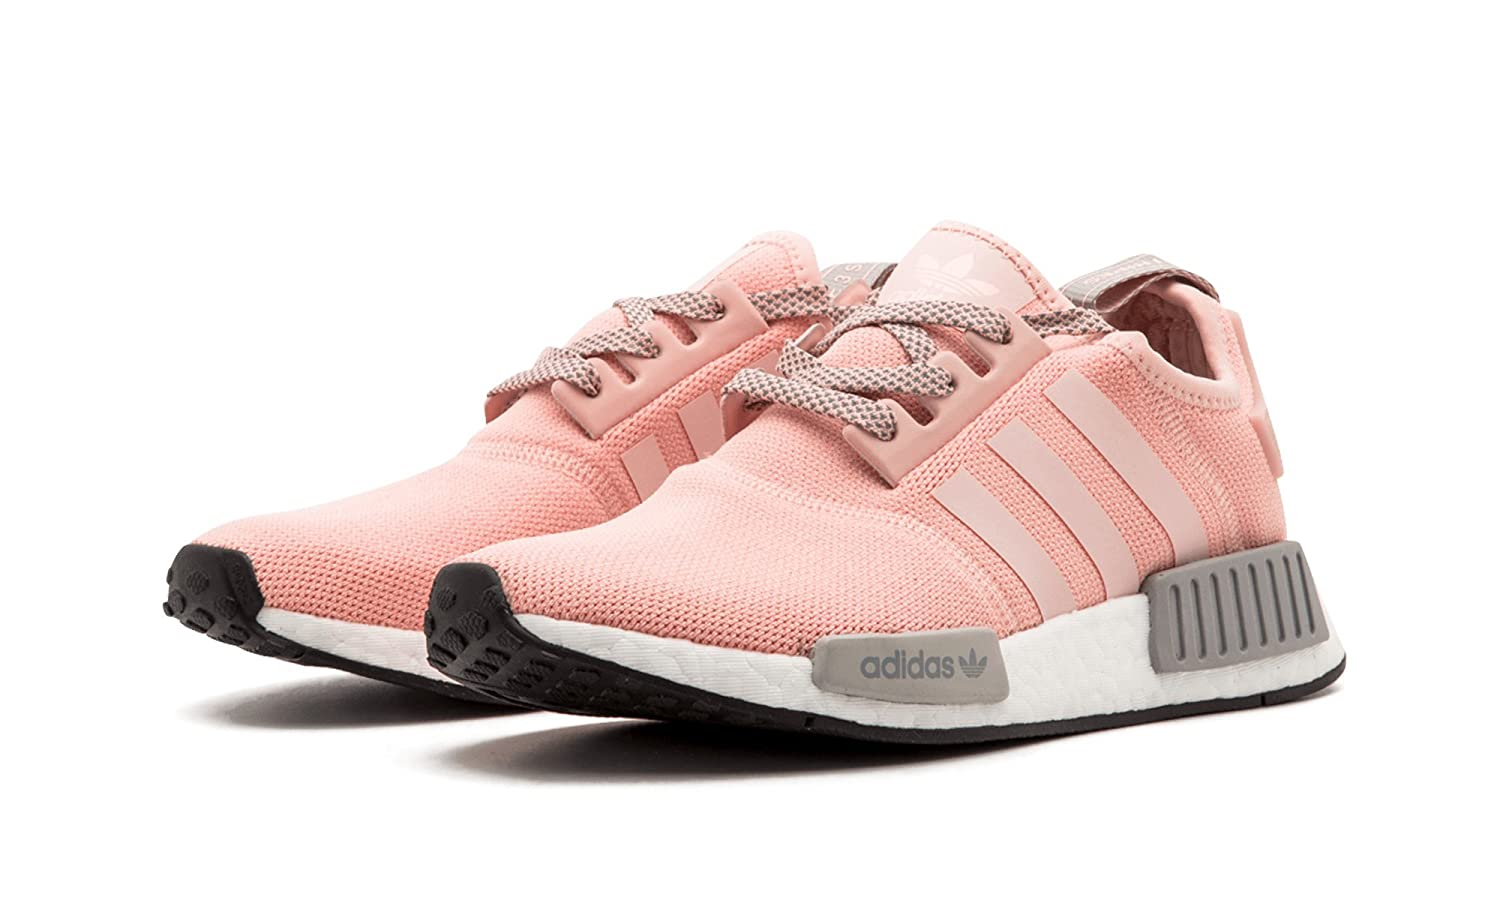 adidas Originals 5.5 NMD_R1 Womens Running Trainers Sneakers B072MGKR24 5.5 Originals W US|US 5.5W 9685c5